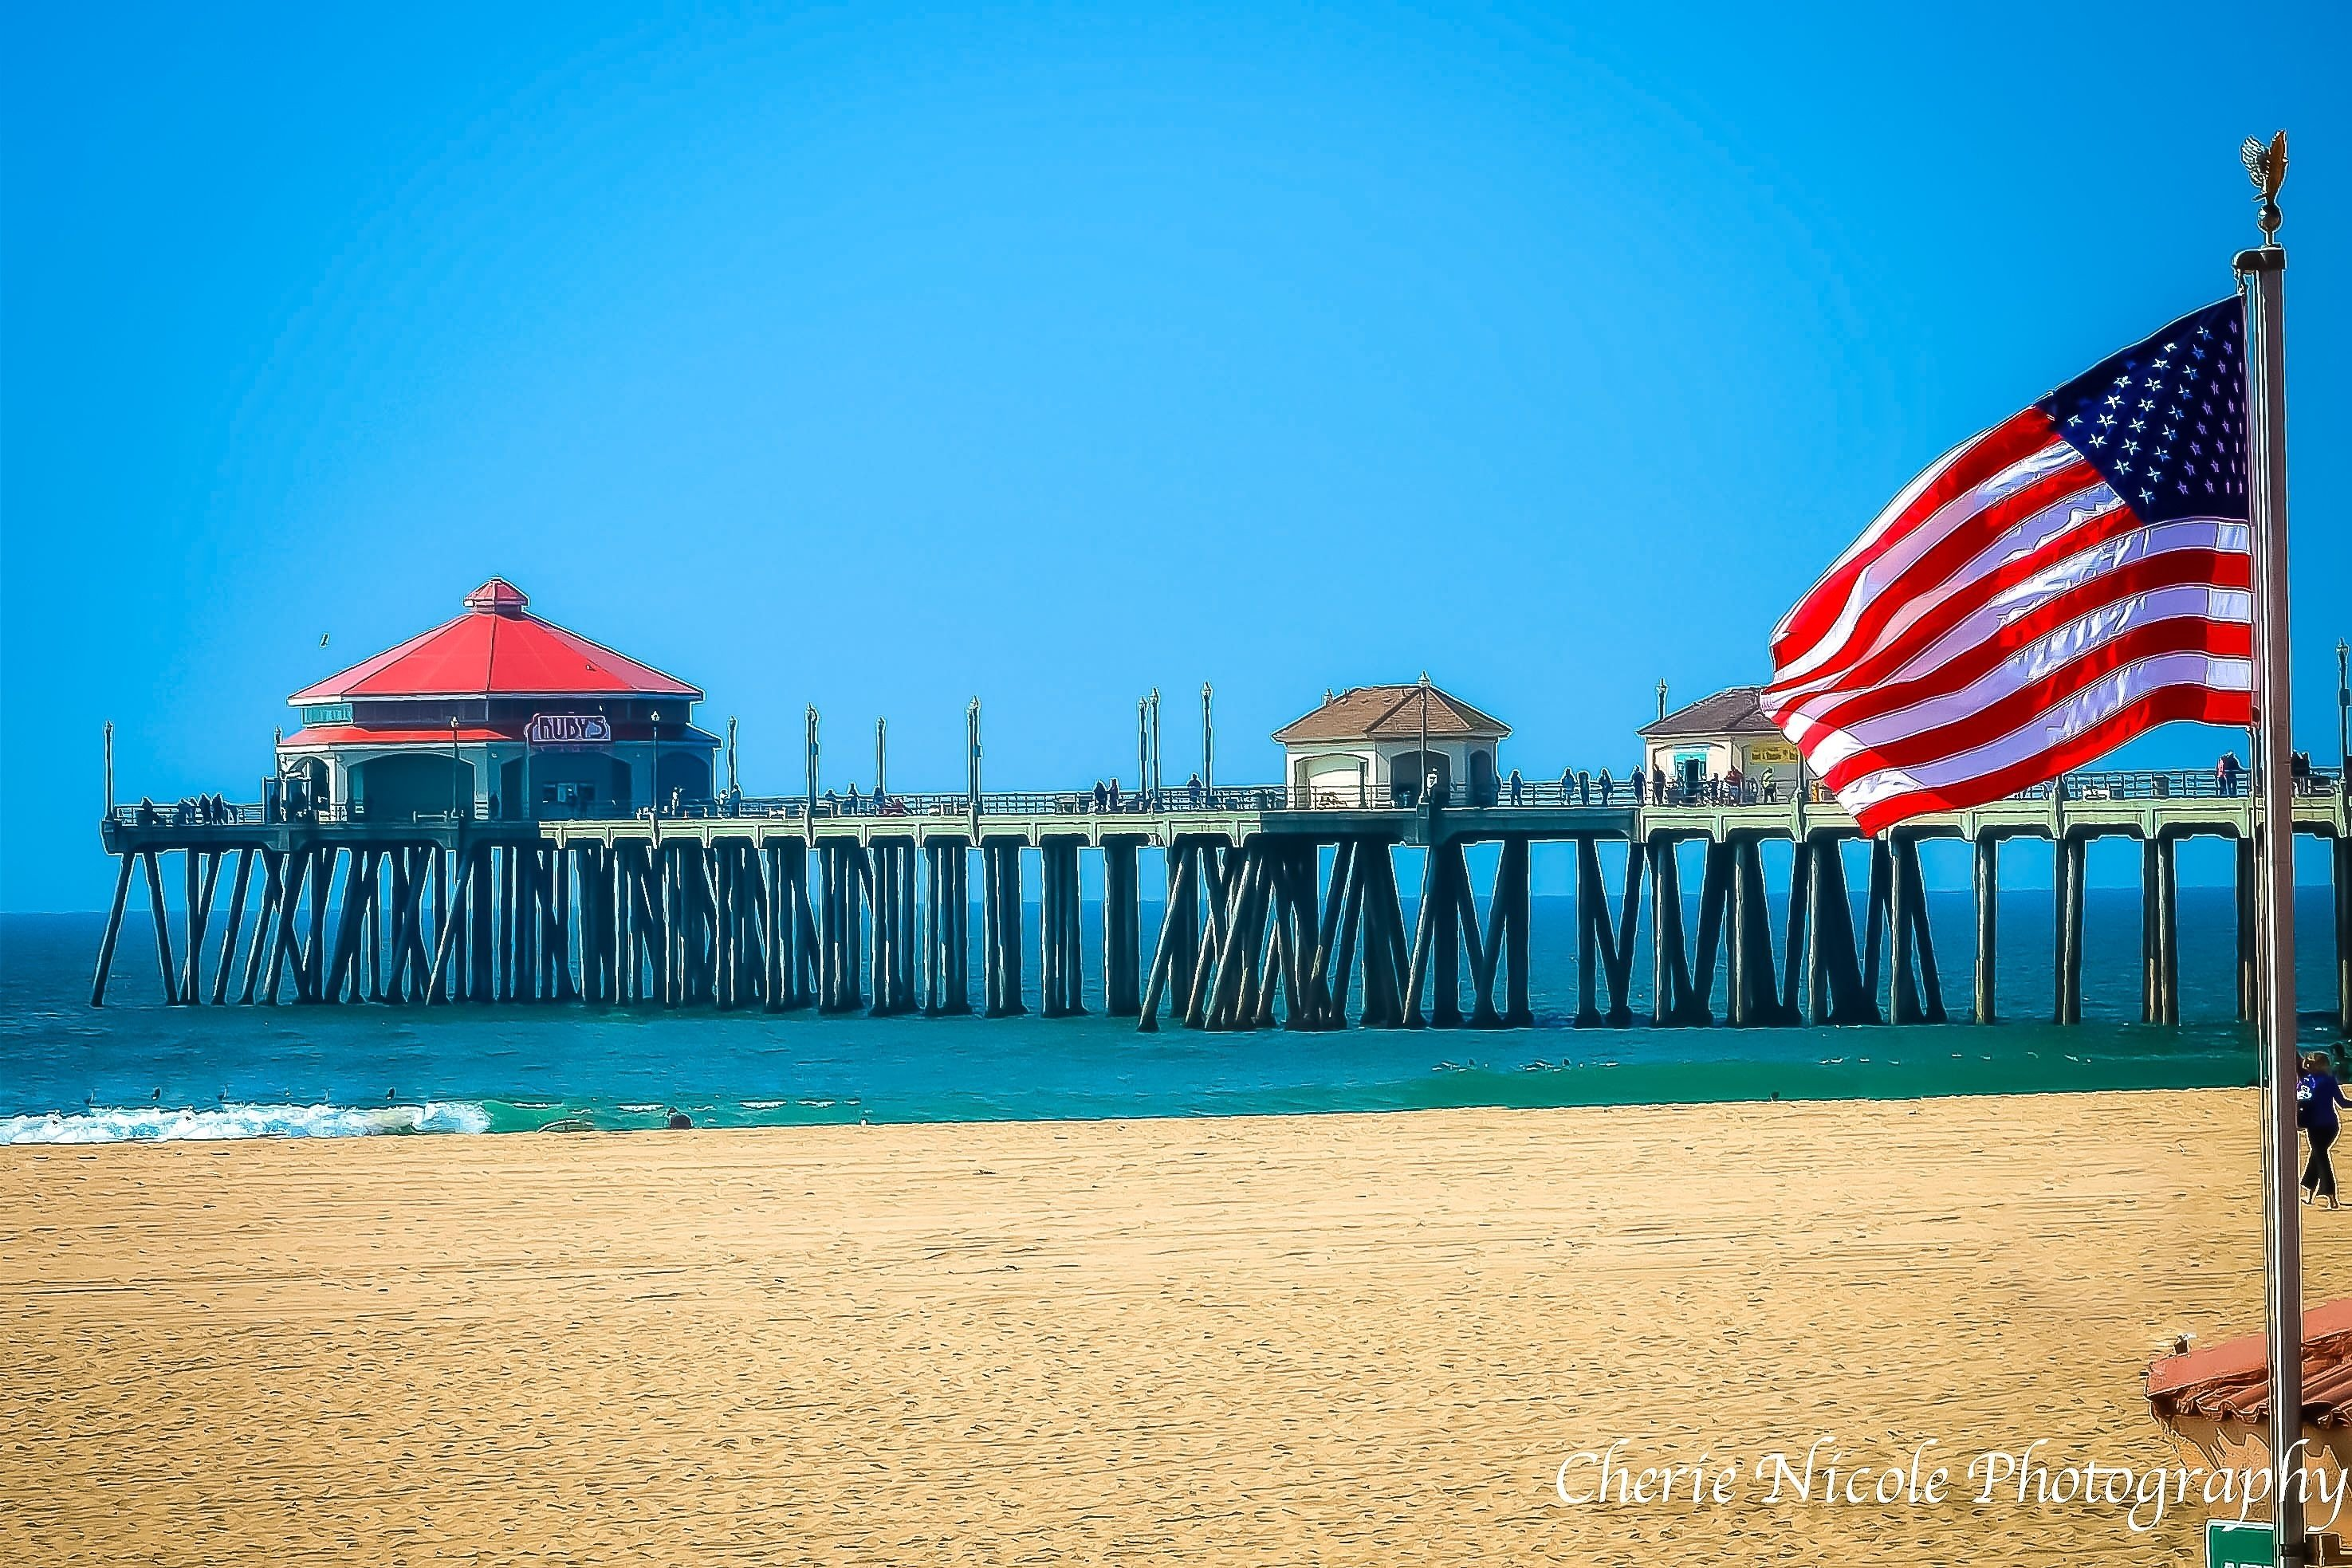 huntington beach pier, fourth of july, 4th of july, america | cherie